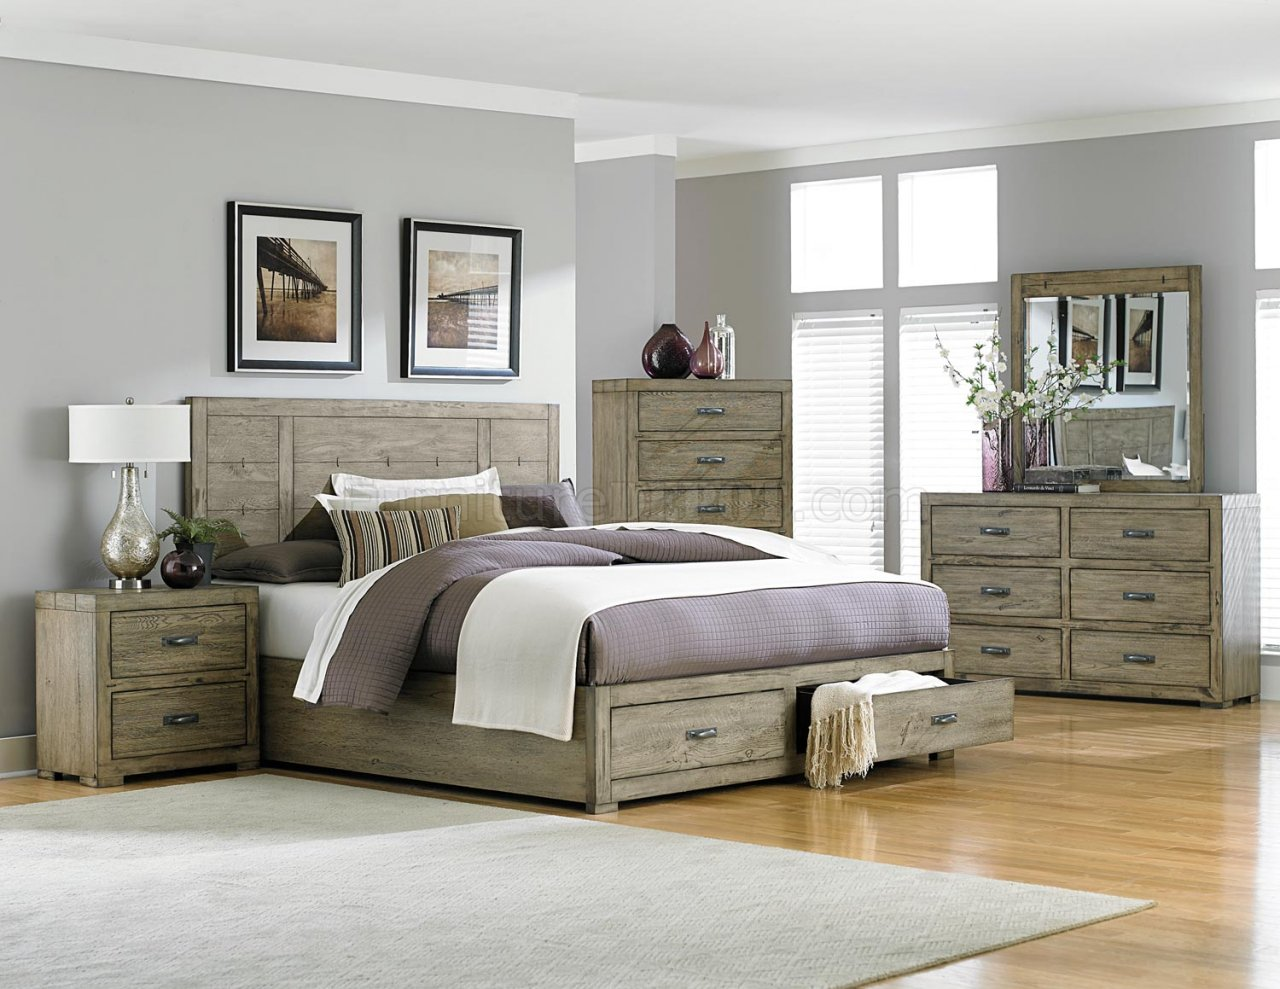 abbott 2297 bedroom in driftwood by homelegance w options hebs 2297